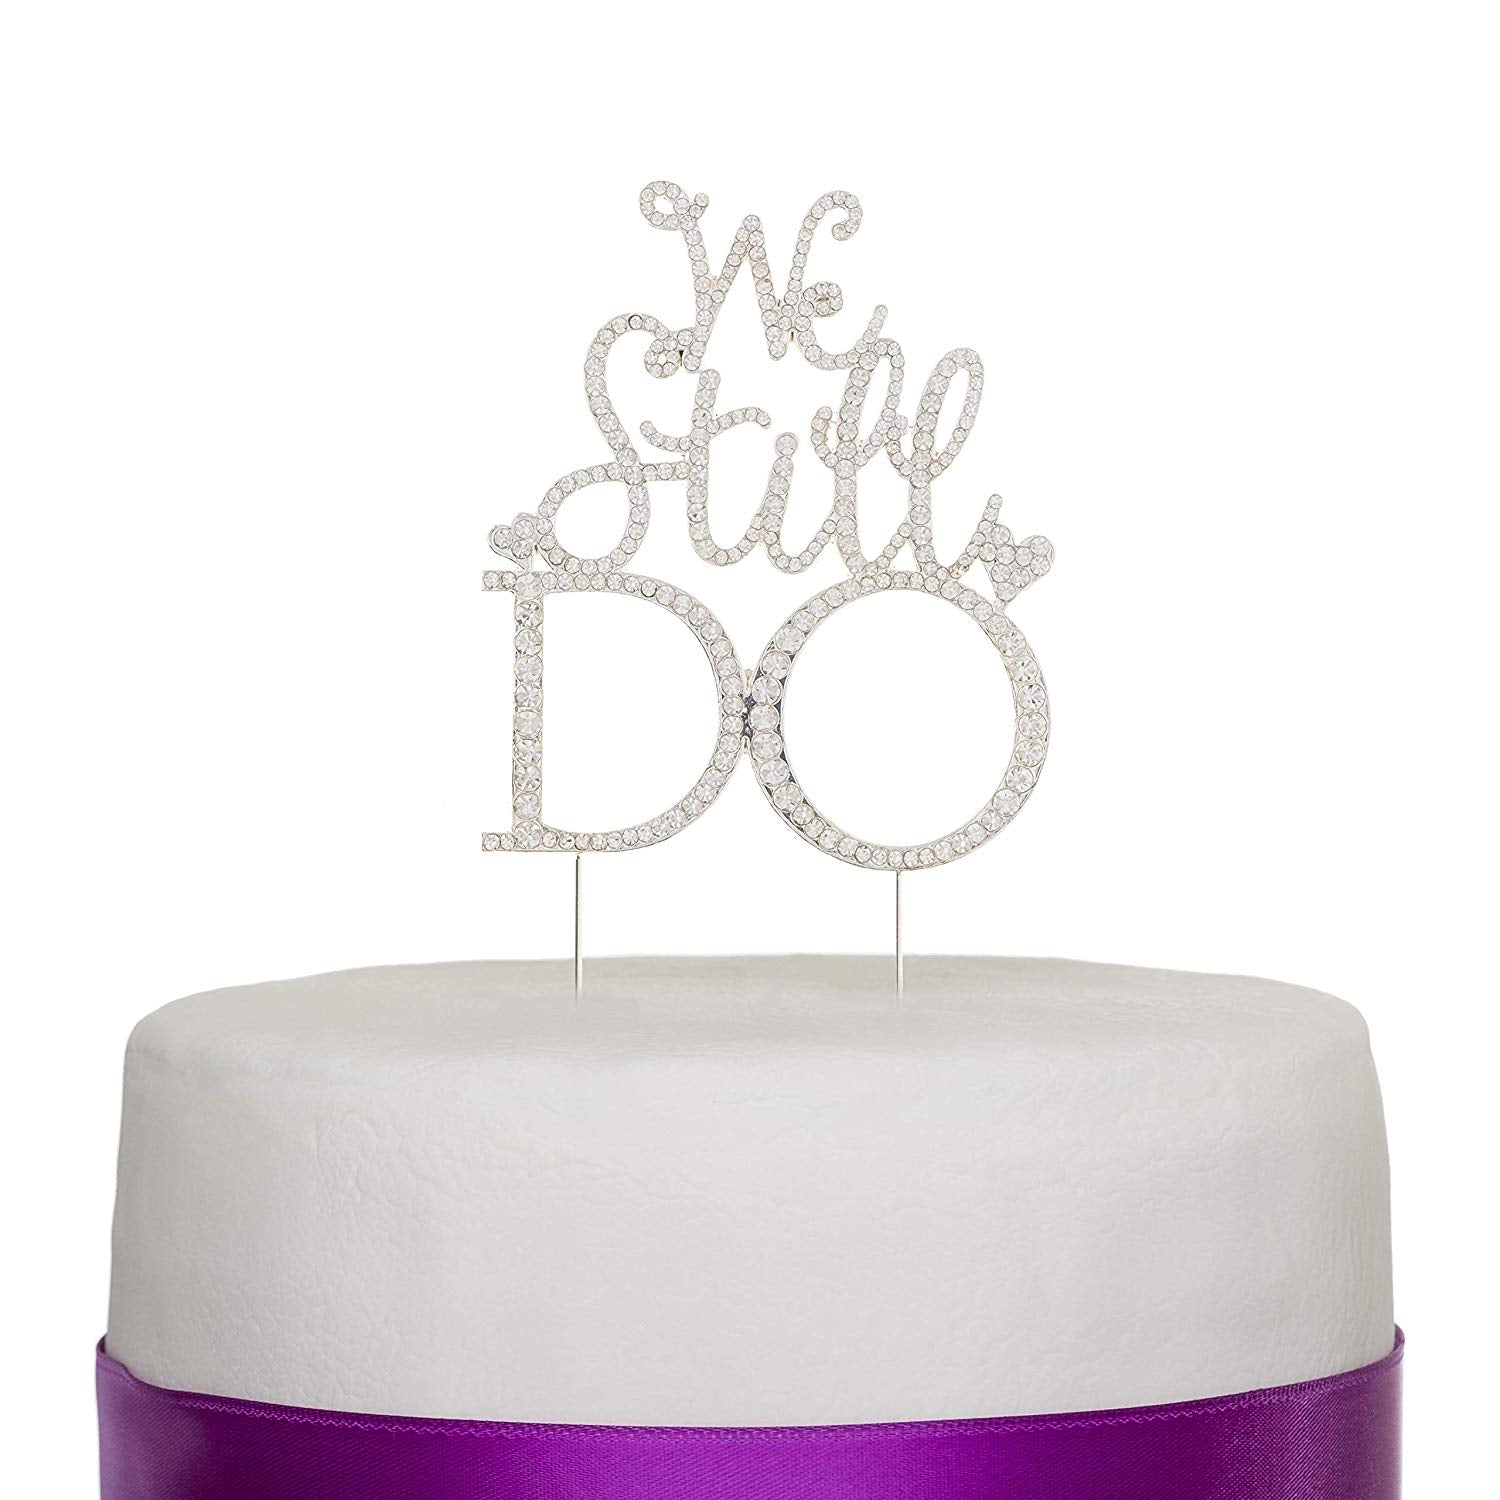 We Still Do Anniversary Cake Topper - Silver